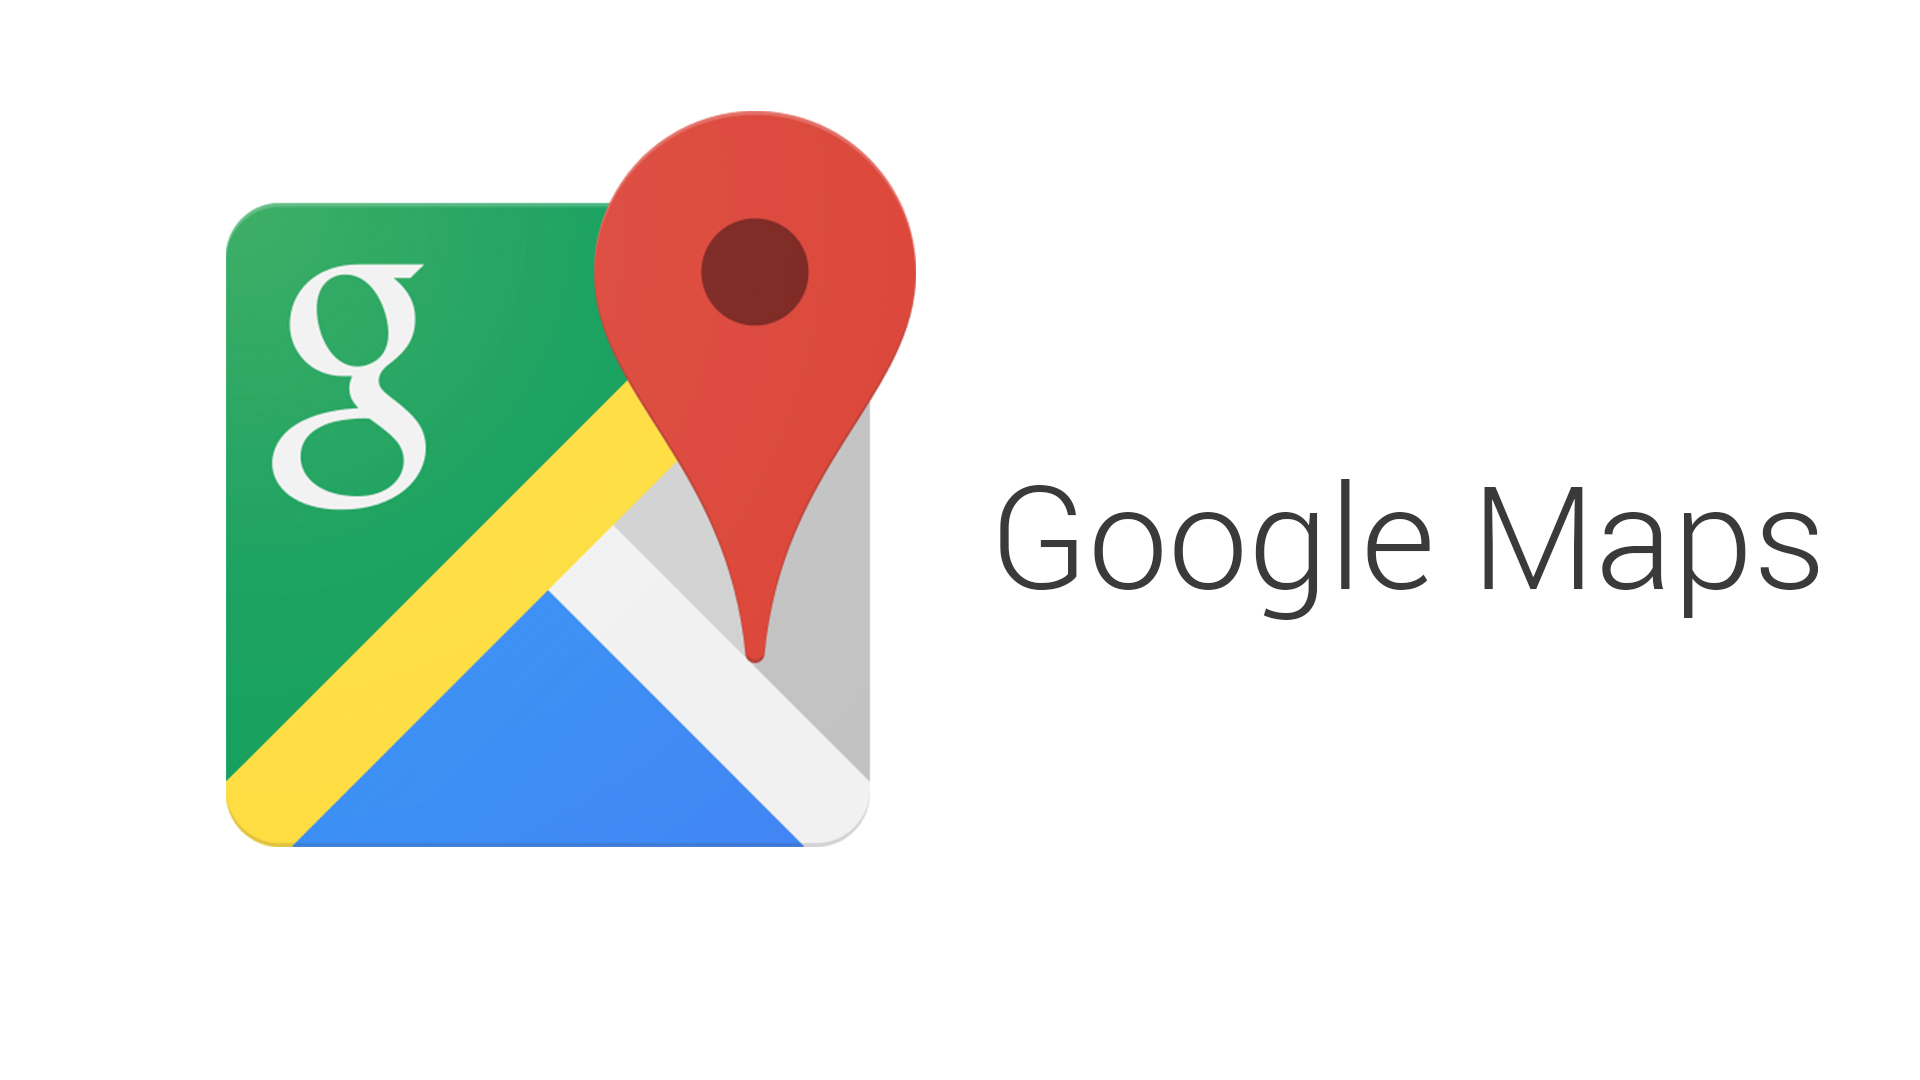 You will very soon be able to use Google Maps even after being offline